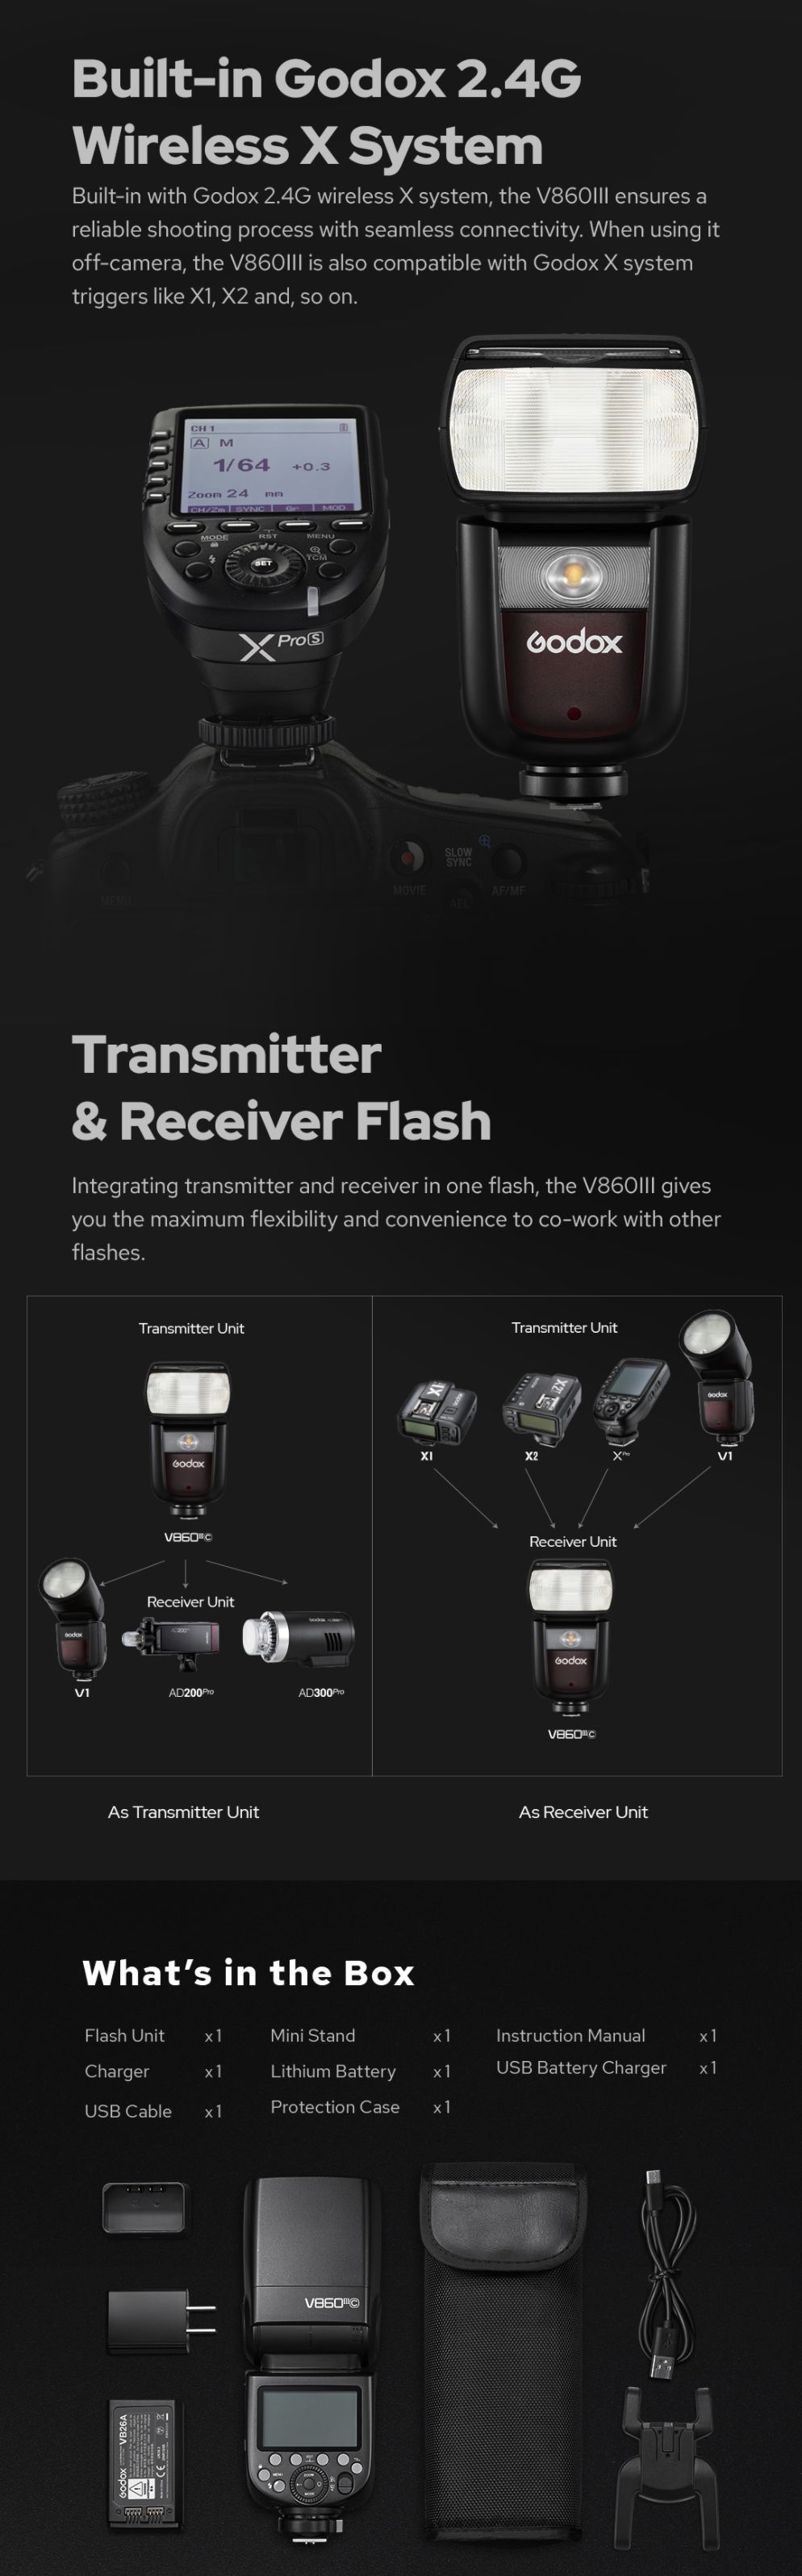 Built-In Godox 2.4G Wireless X System Transmitter & Receiver Flash What`s in the box